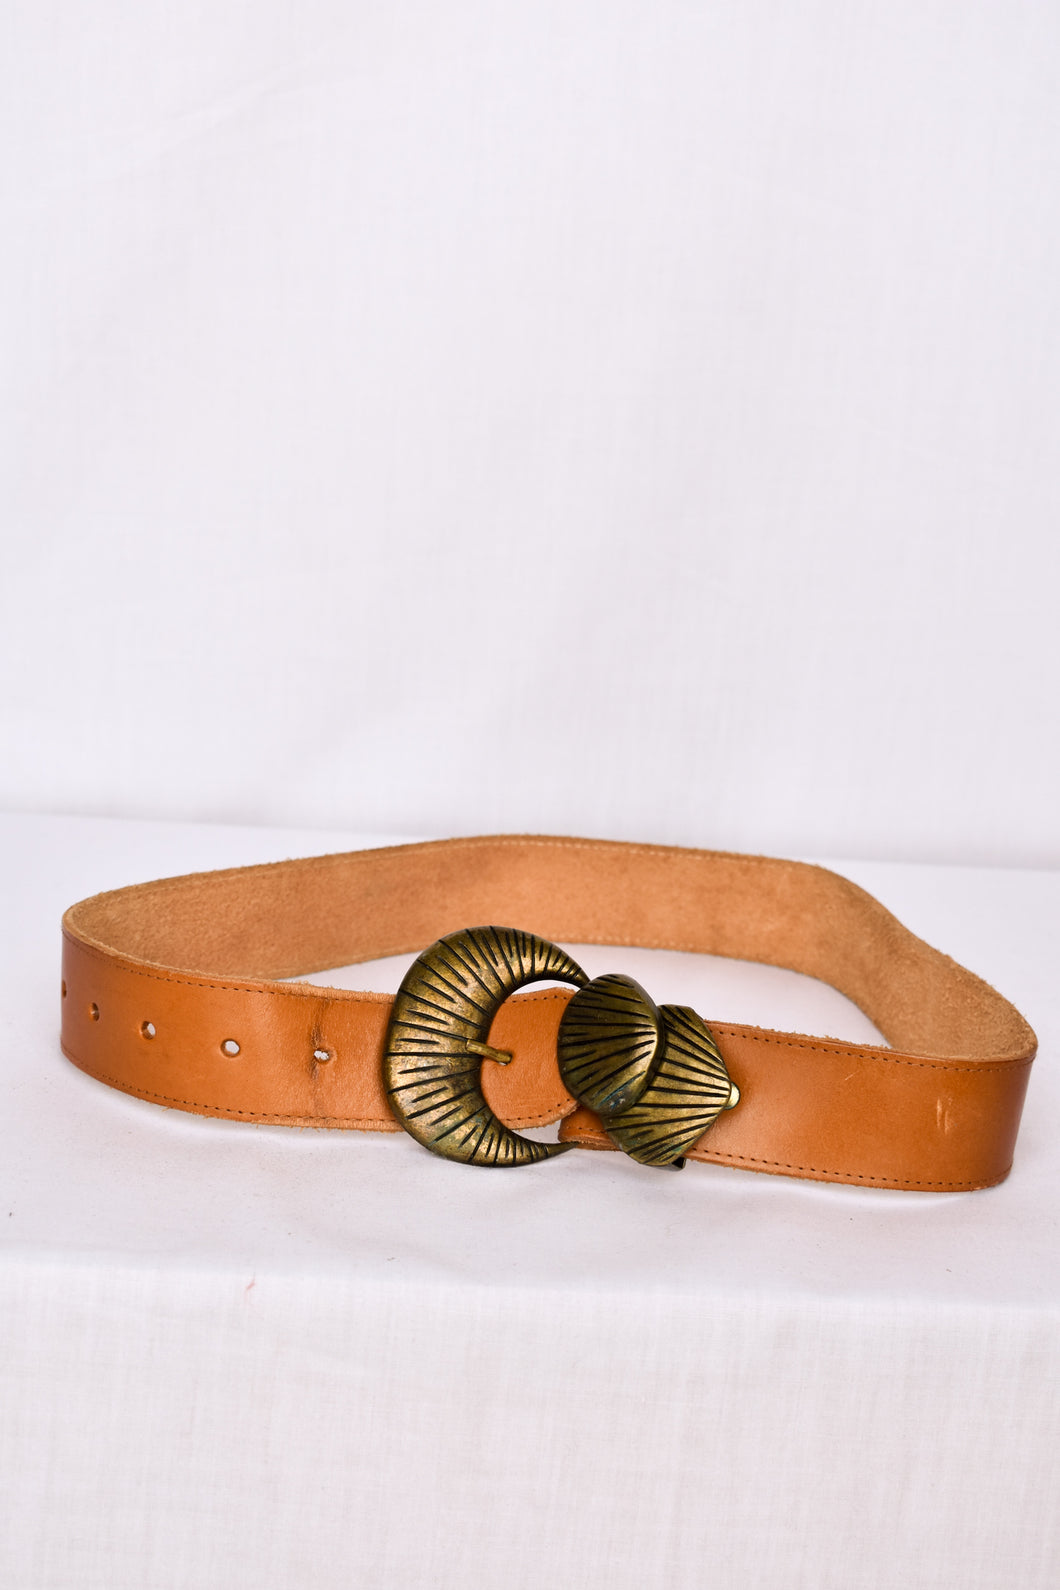 Tan leather belt with shell buckle, 78cm